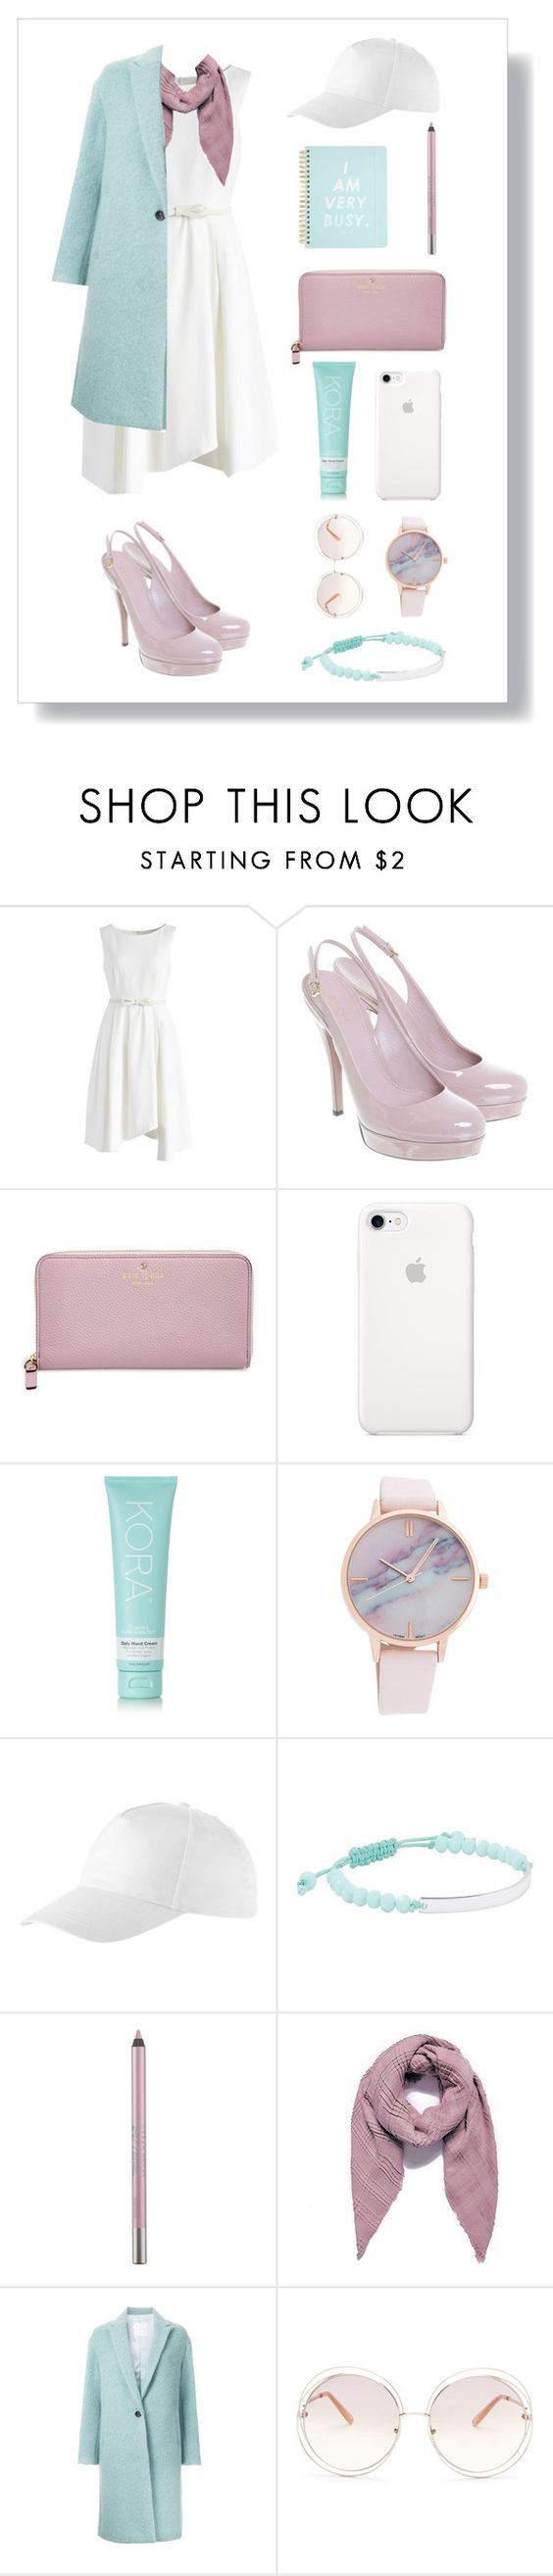 """Little white dress 🌼"" by xanniee ❤ liked on Polyvore featuring Chicwish, Gucci, Kate Spade, KORA Organics by Miranda Kerr, Witchery, Urban Decay, CITYSHOP and Chloé"